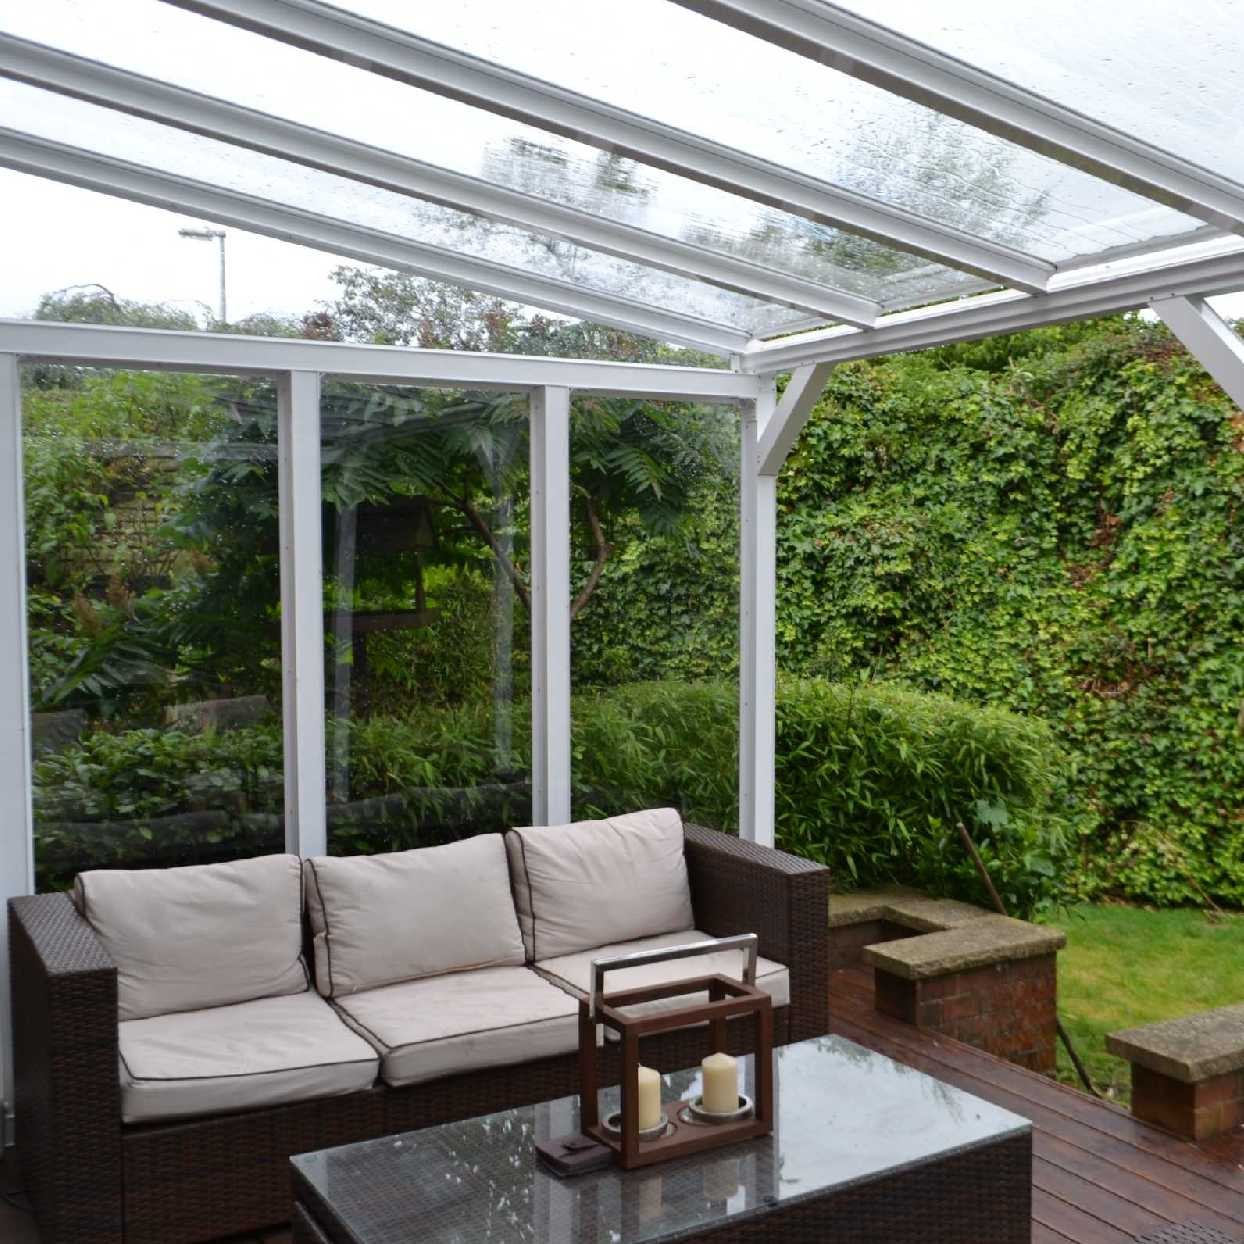 Omega Smart White Lean-To Canopy with 6mm Glass Clear Plate Polycarbonate Glazing - 4.9m (W) x 2.5m (P), (3) Supporting Posts